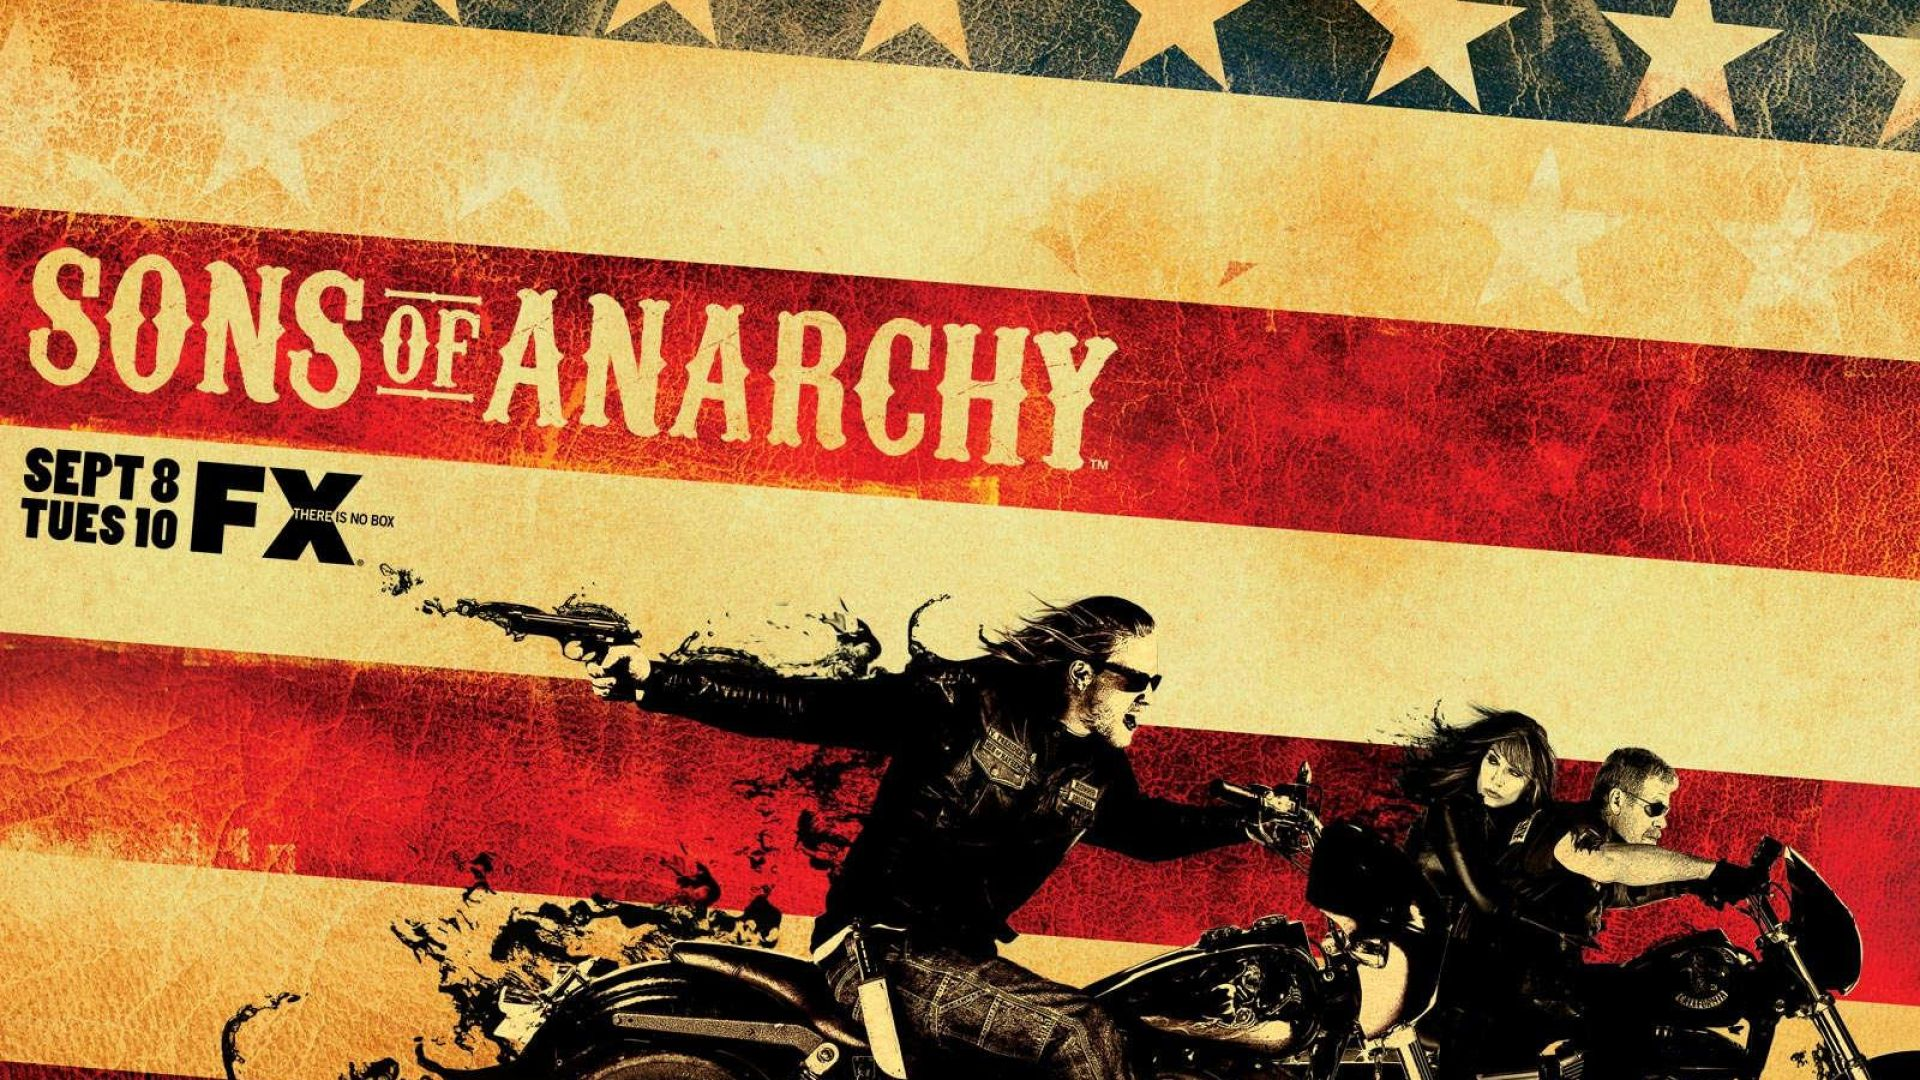 Sons of Anarchy wallpaper 18